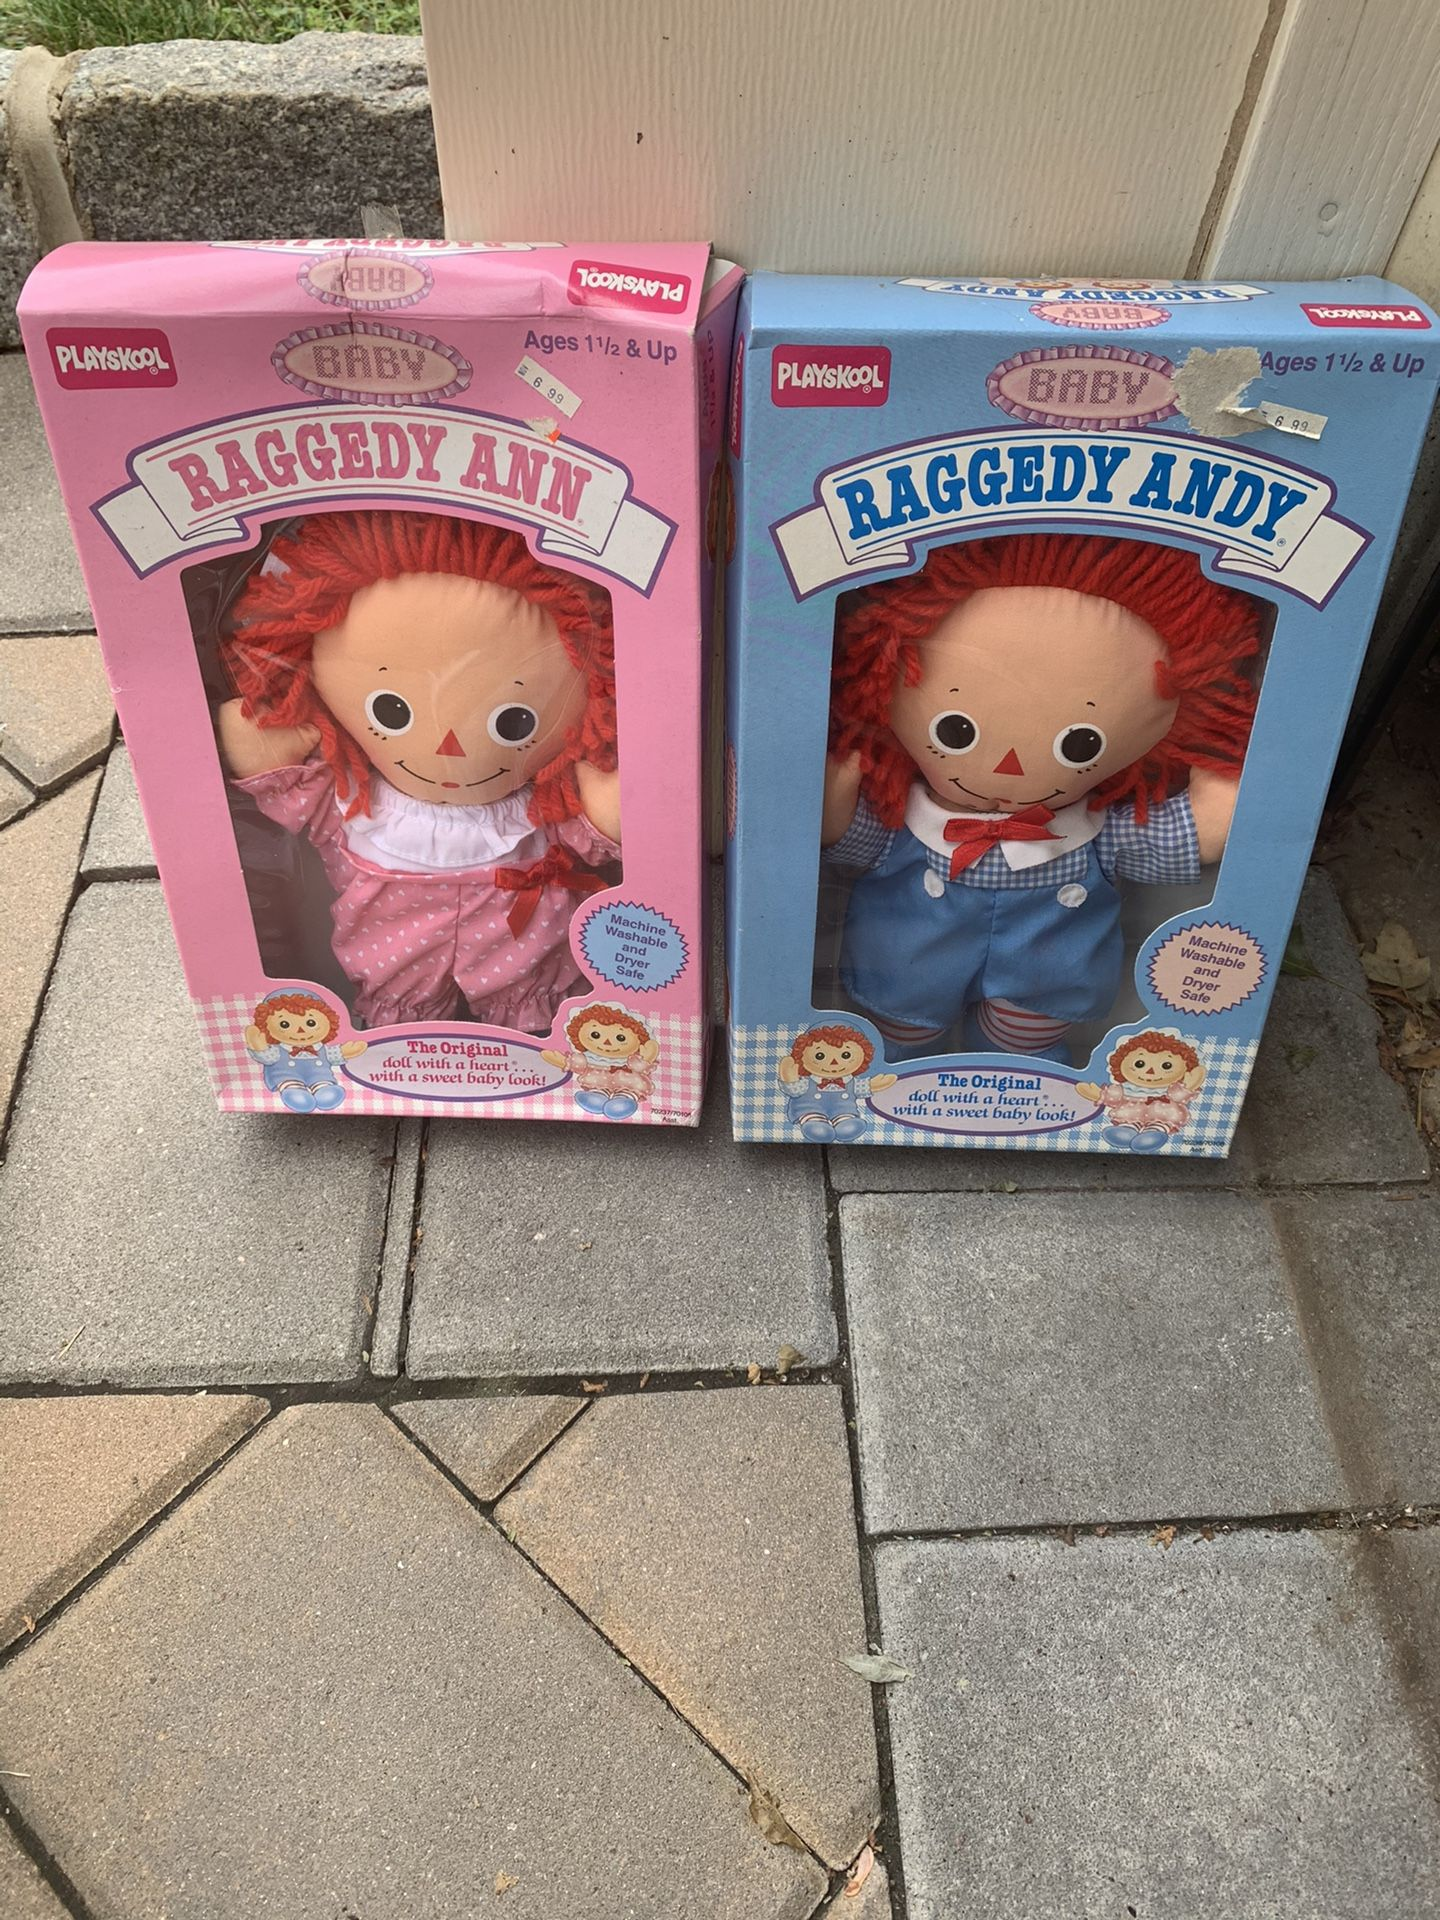 Baby Raggedy Ann and Andy Dolls